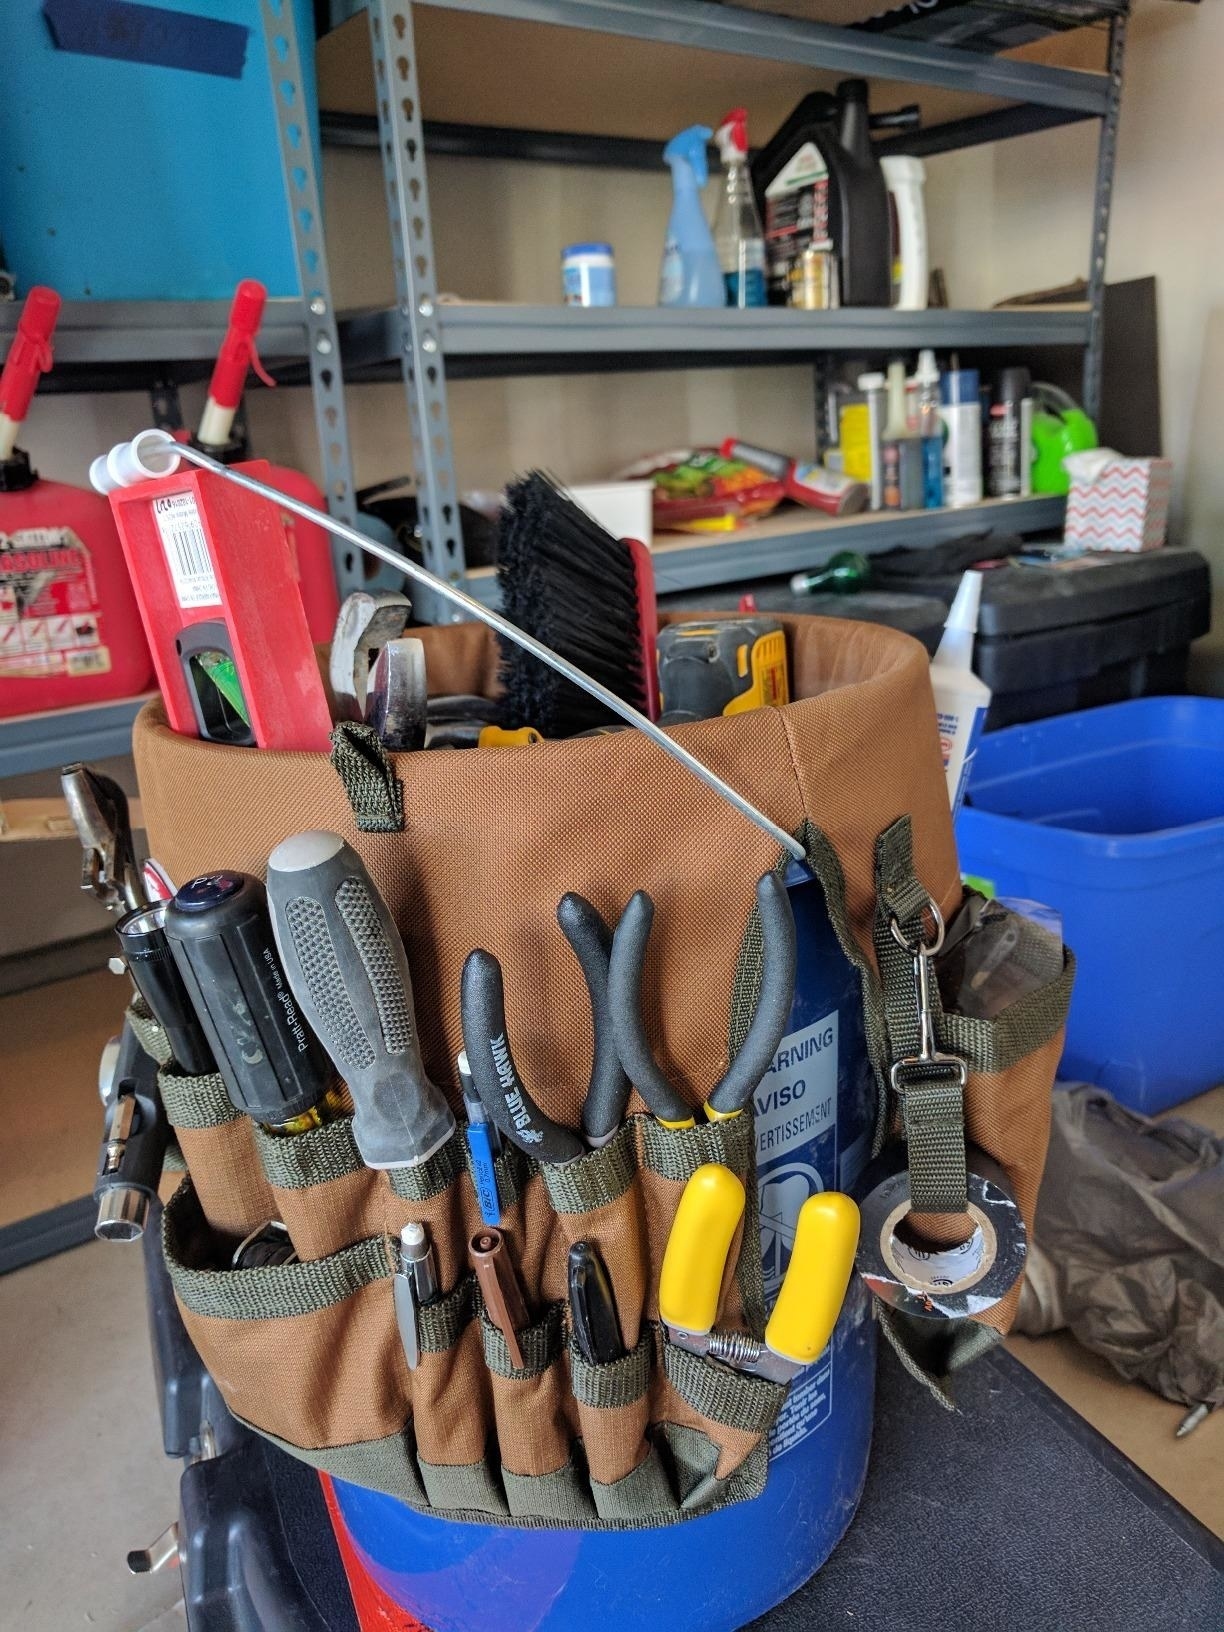 The bucket loaded with tools in the many pockets